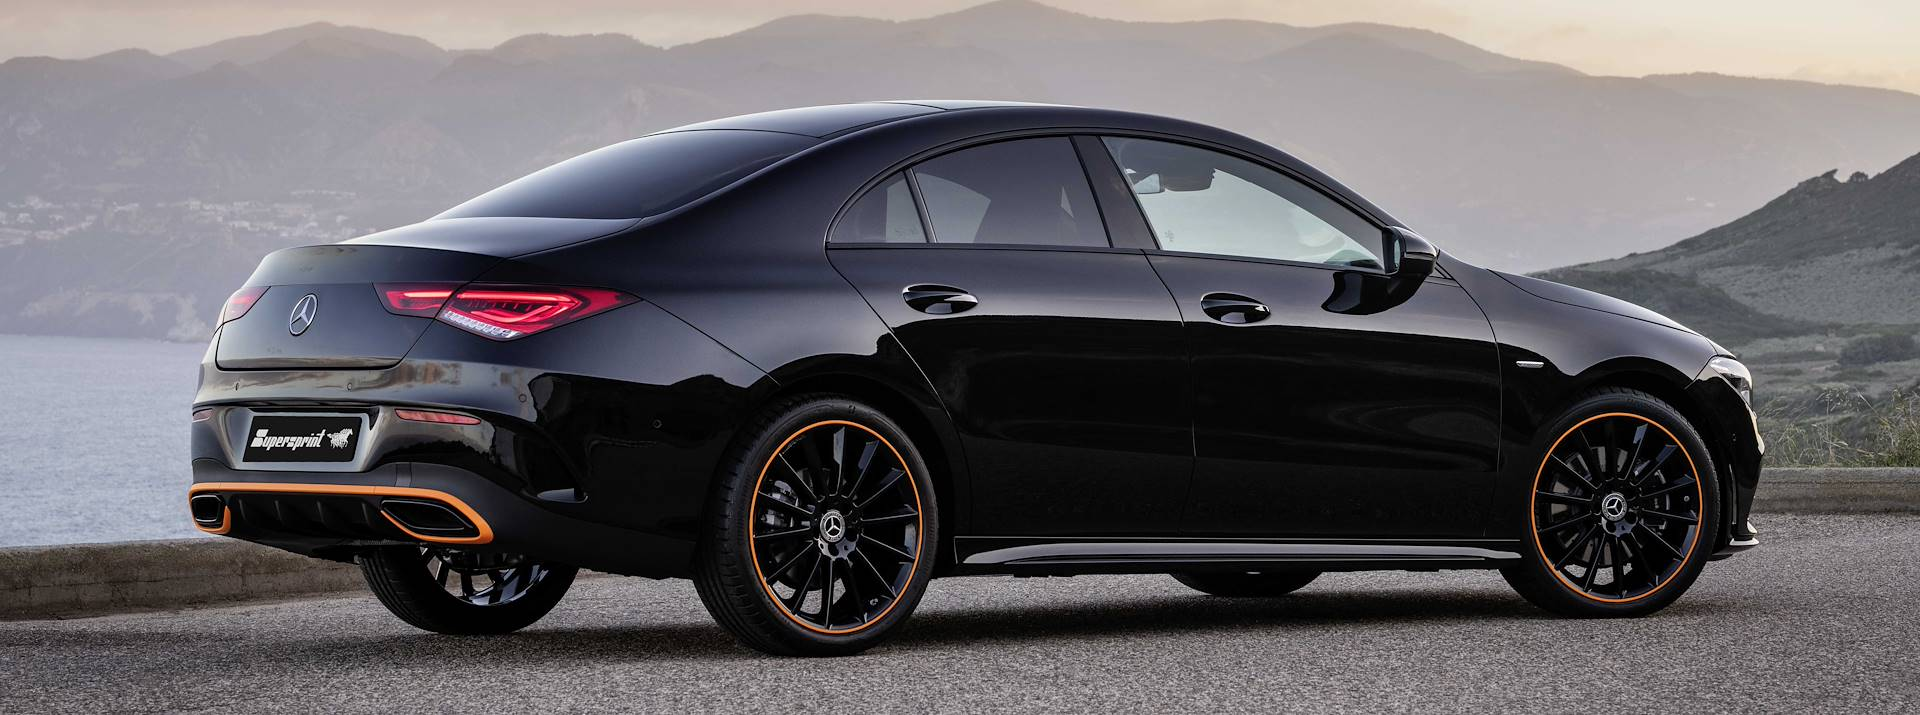 2020 Mercedes CLA 250 Specs and Review